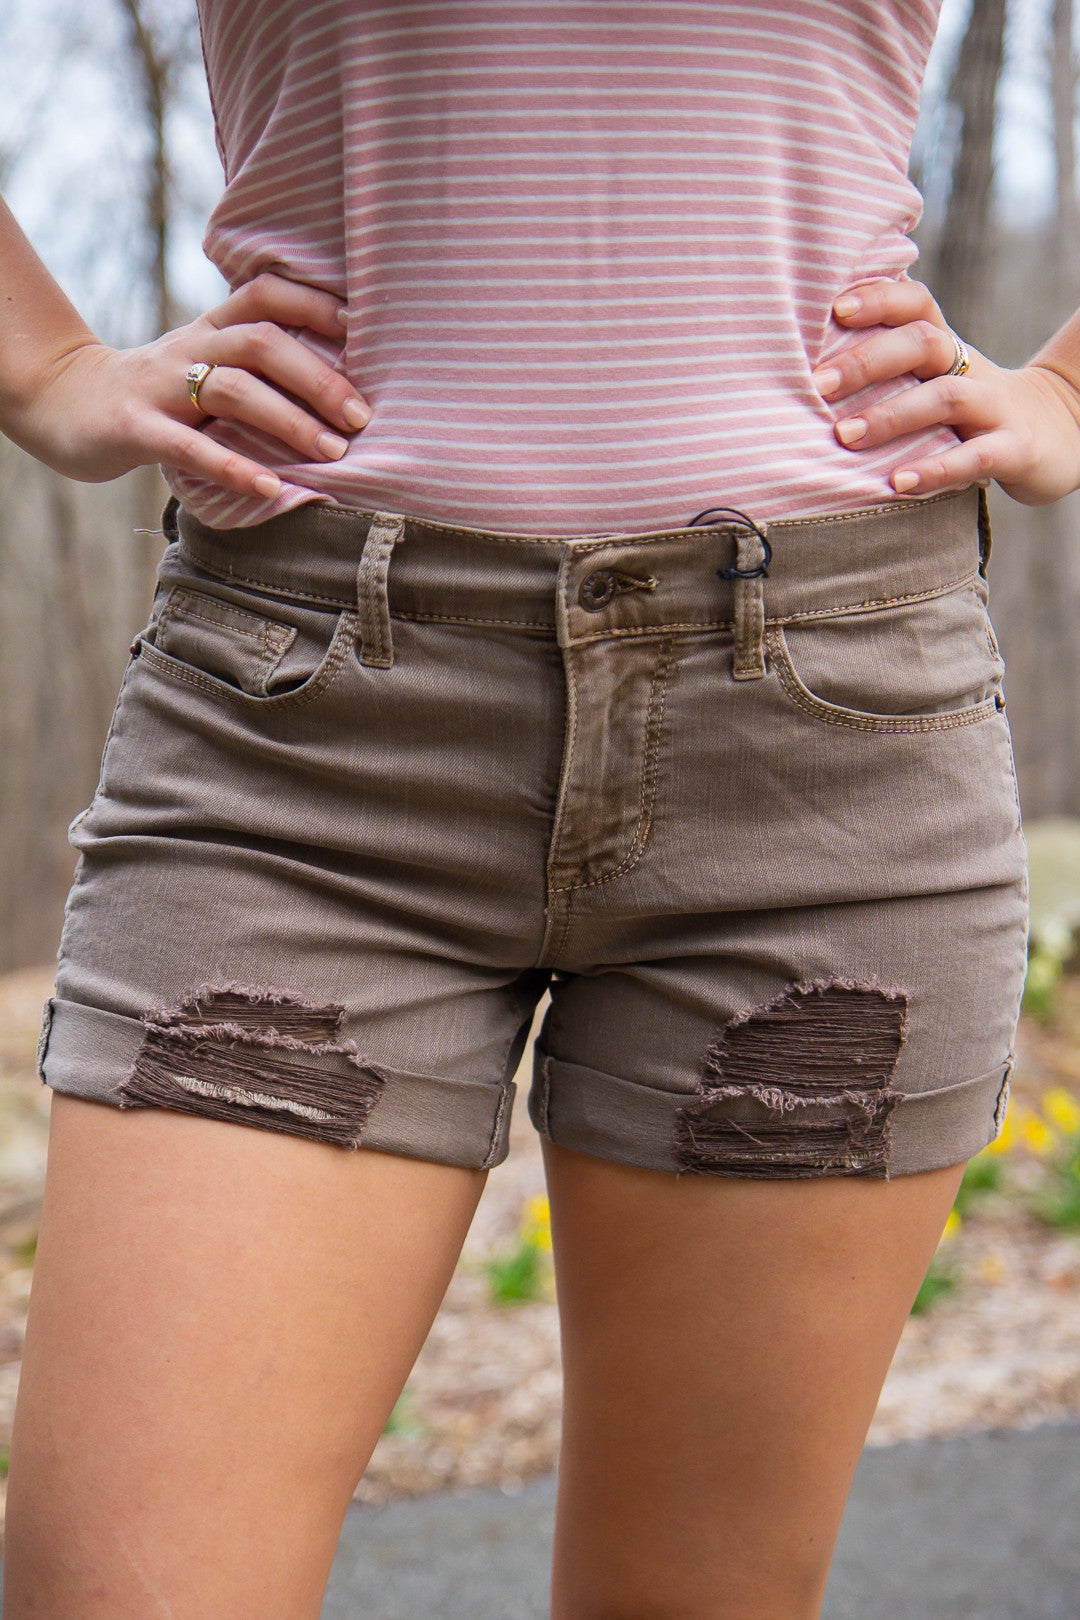 Perfectly Worn Shorts